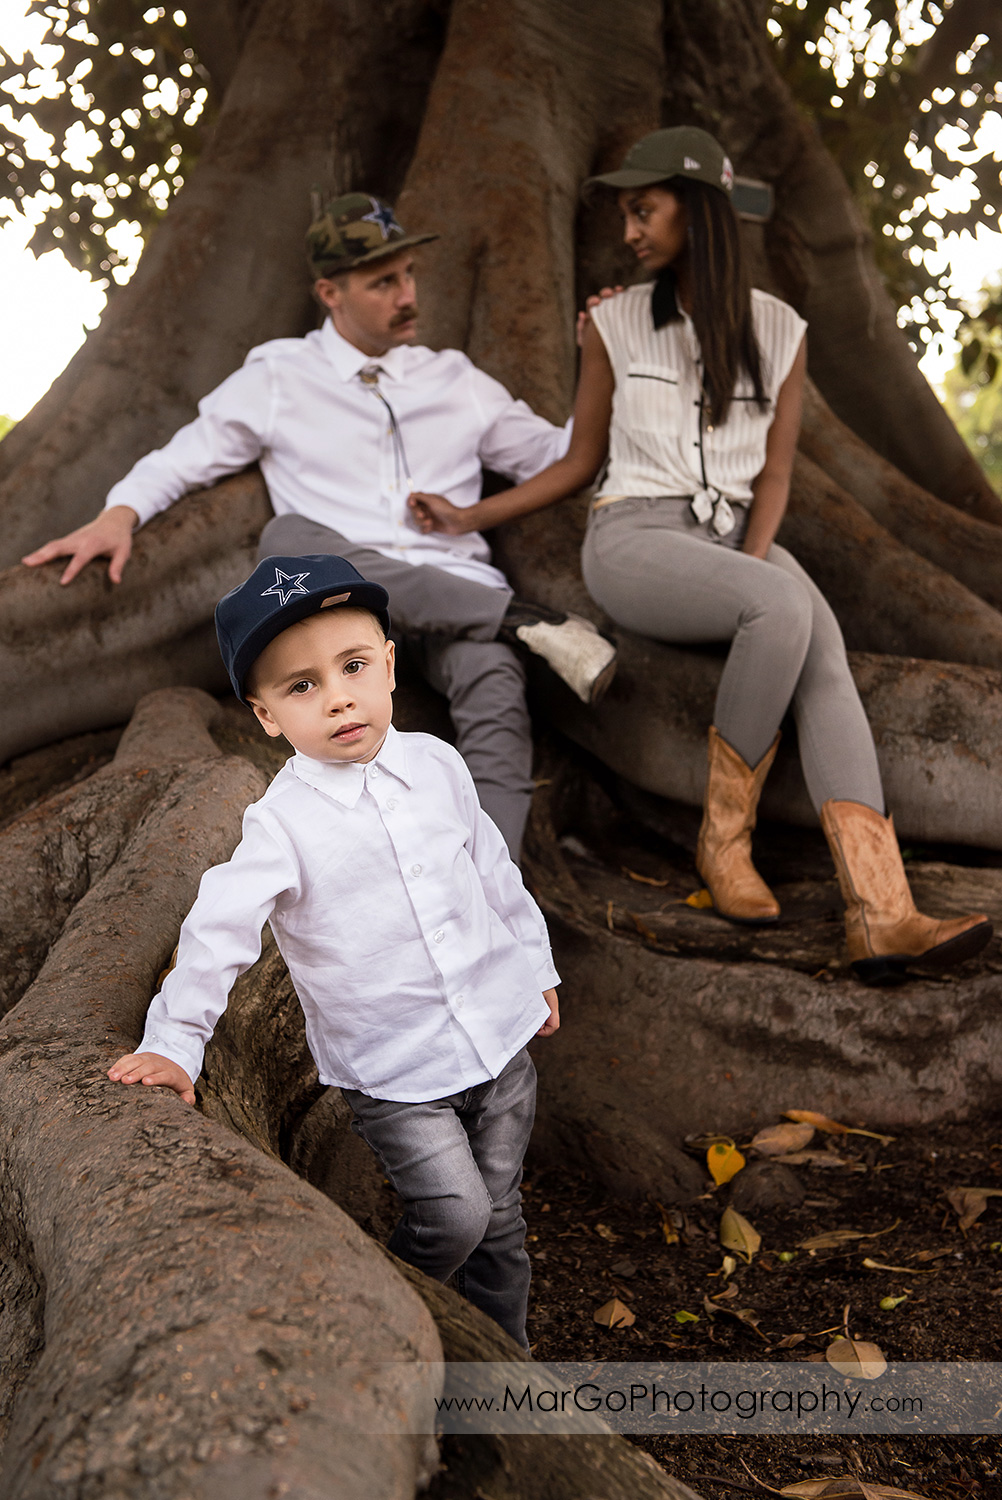 little boy in white shirt with man and woman in white shirt and gray jeans on a big tree in Shinn Historical Park and Arboretum in Fremont